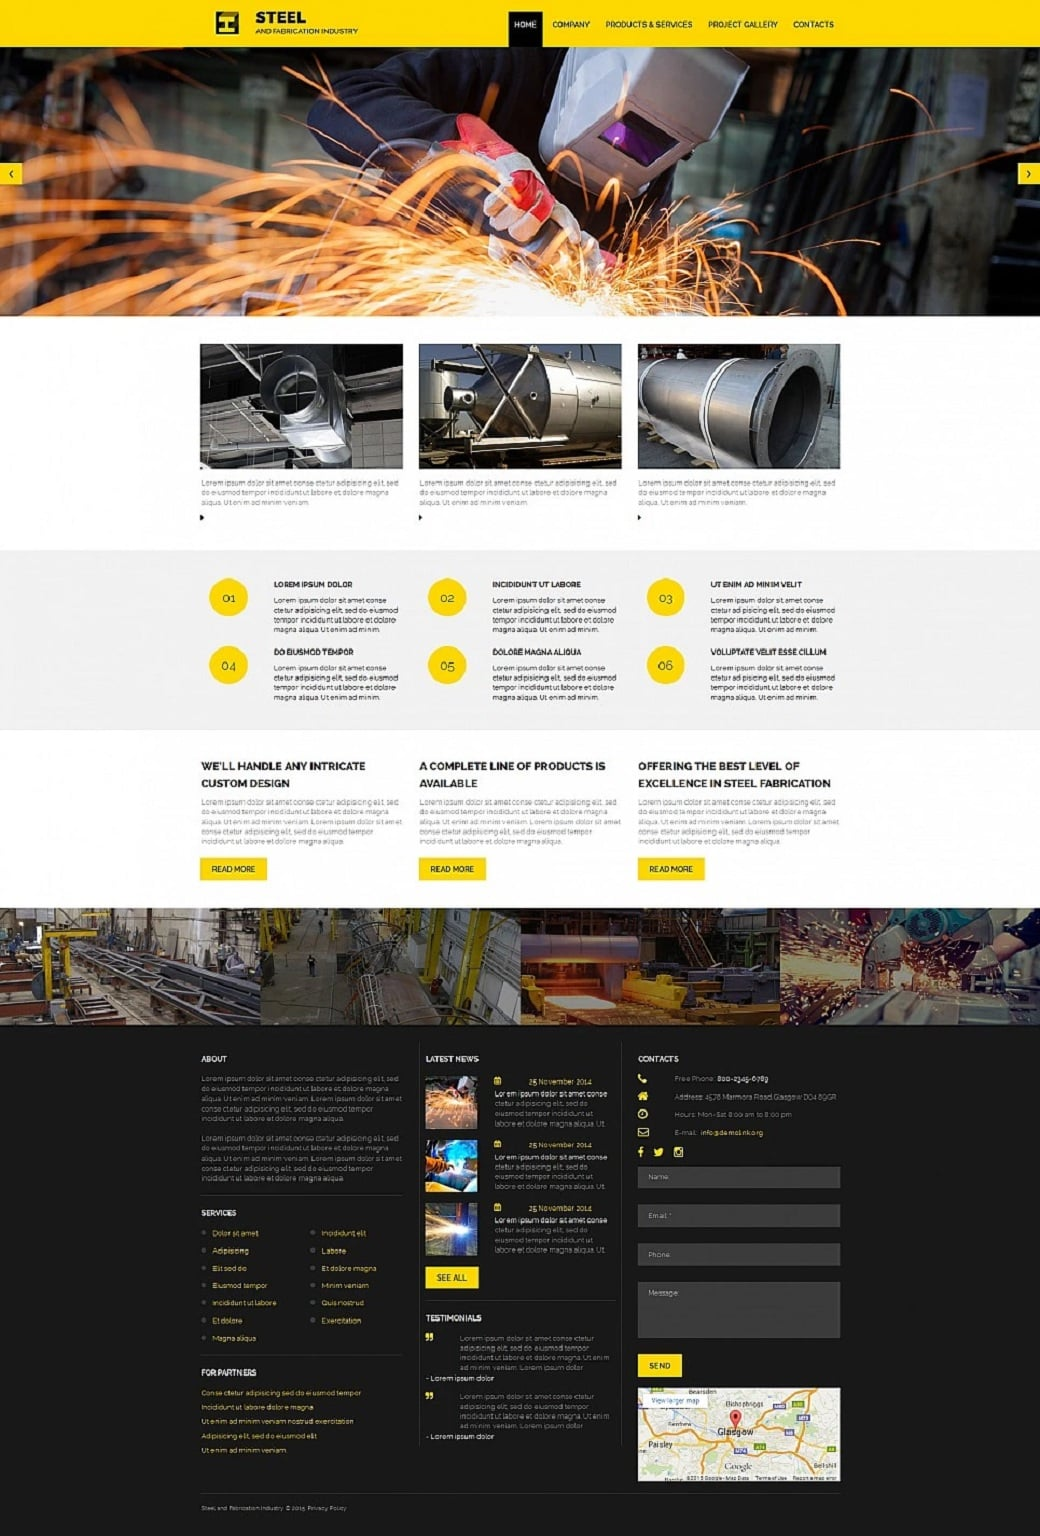 How to make an industrial website - fabrication